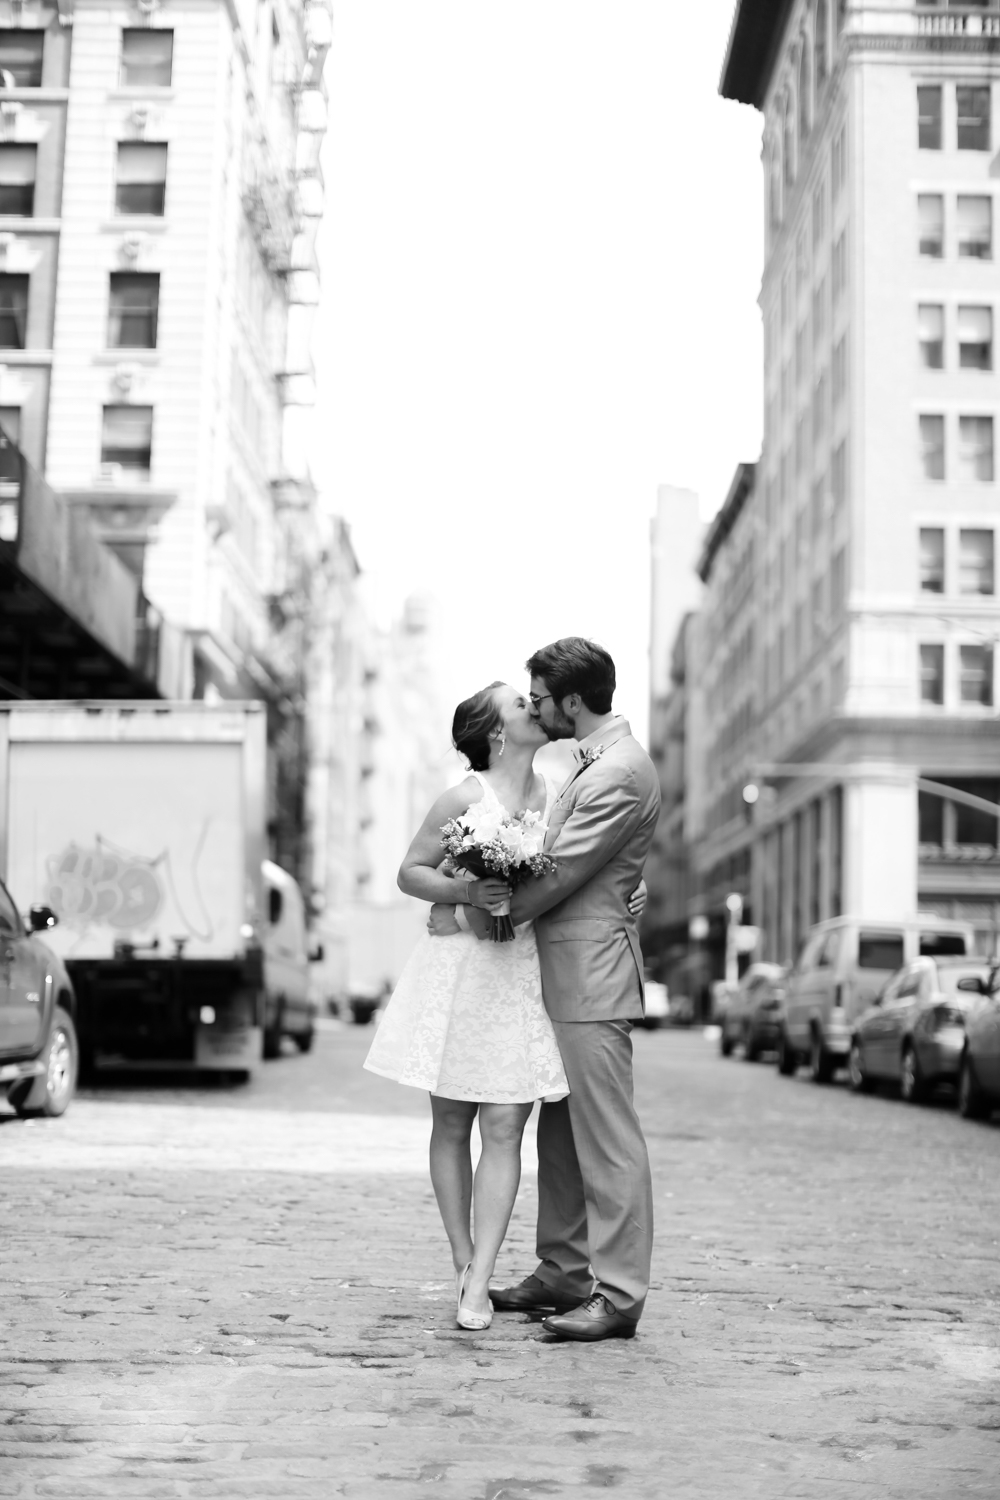 A TriBeCa Newlywed Kiss